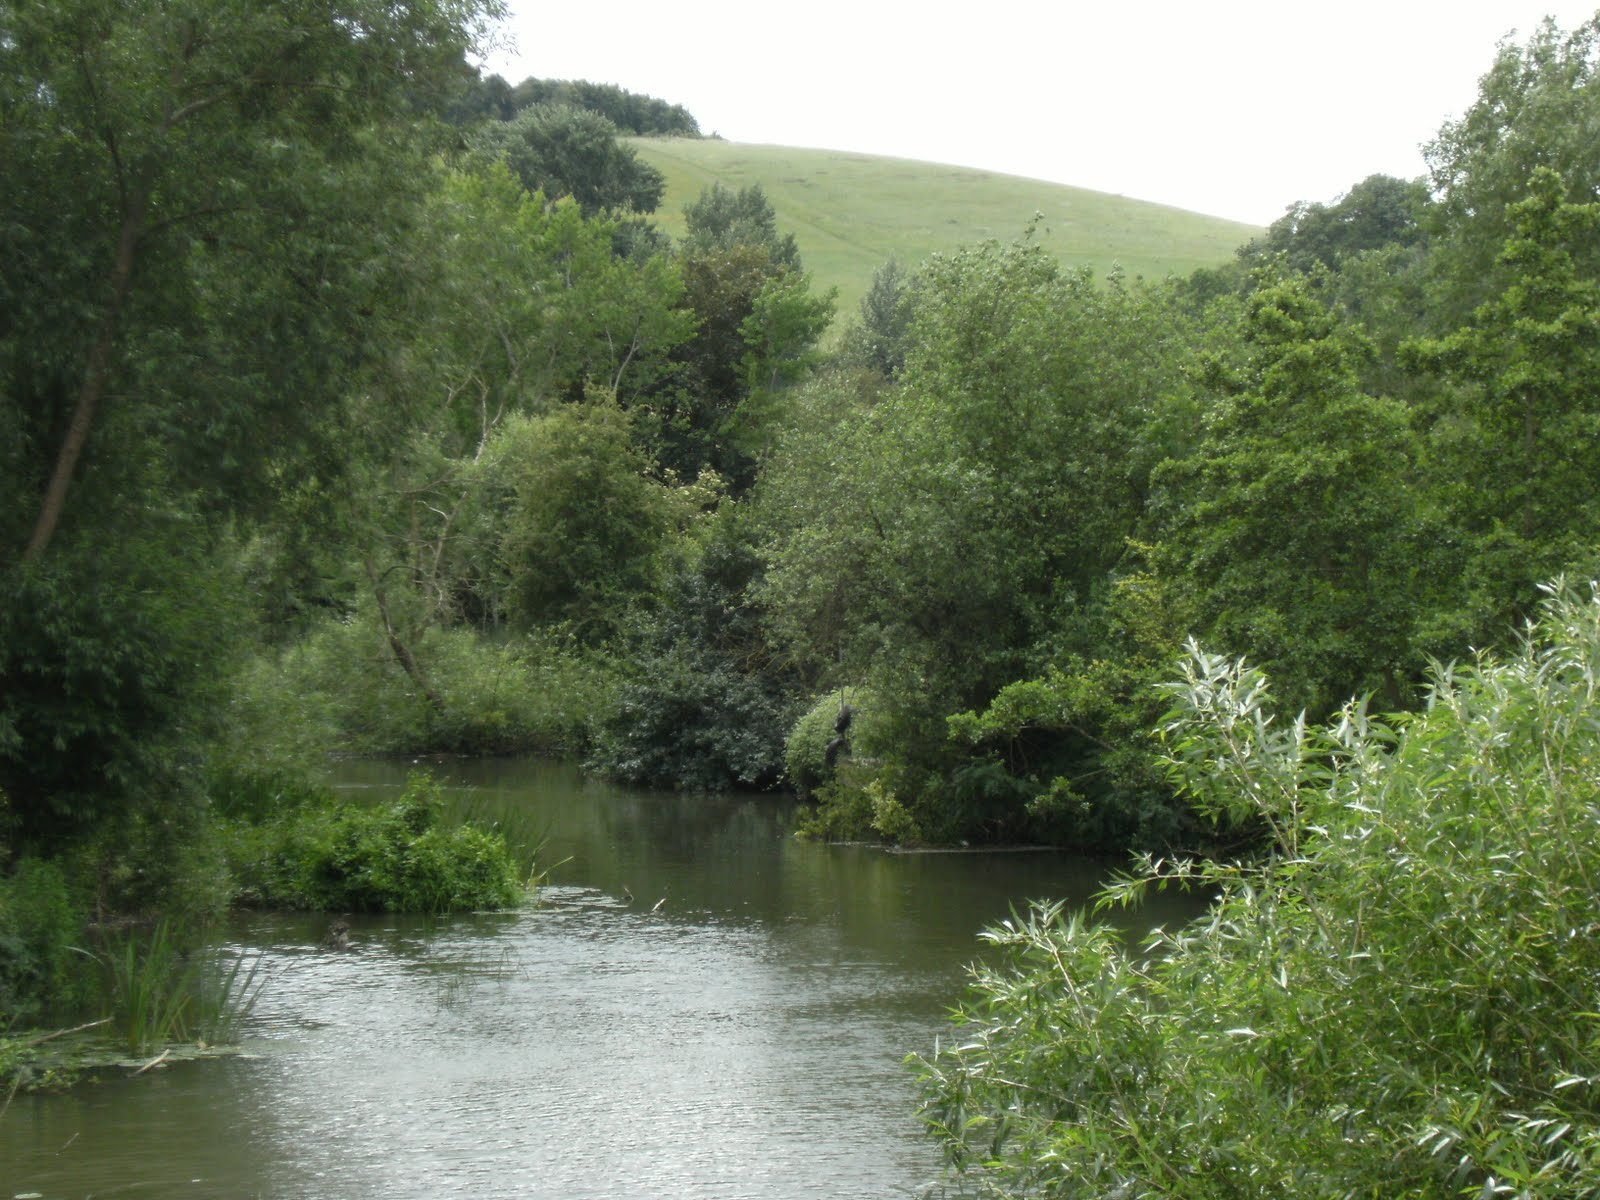 1006190002 The Thames at Little Wittenham